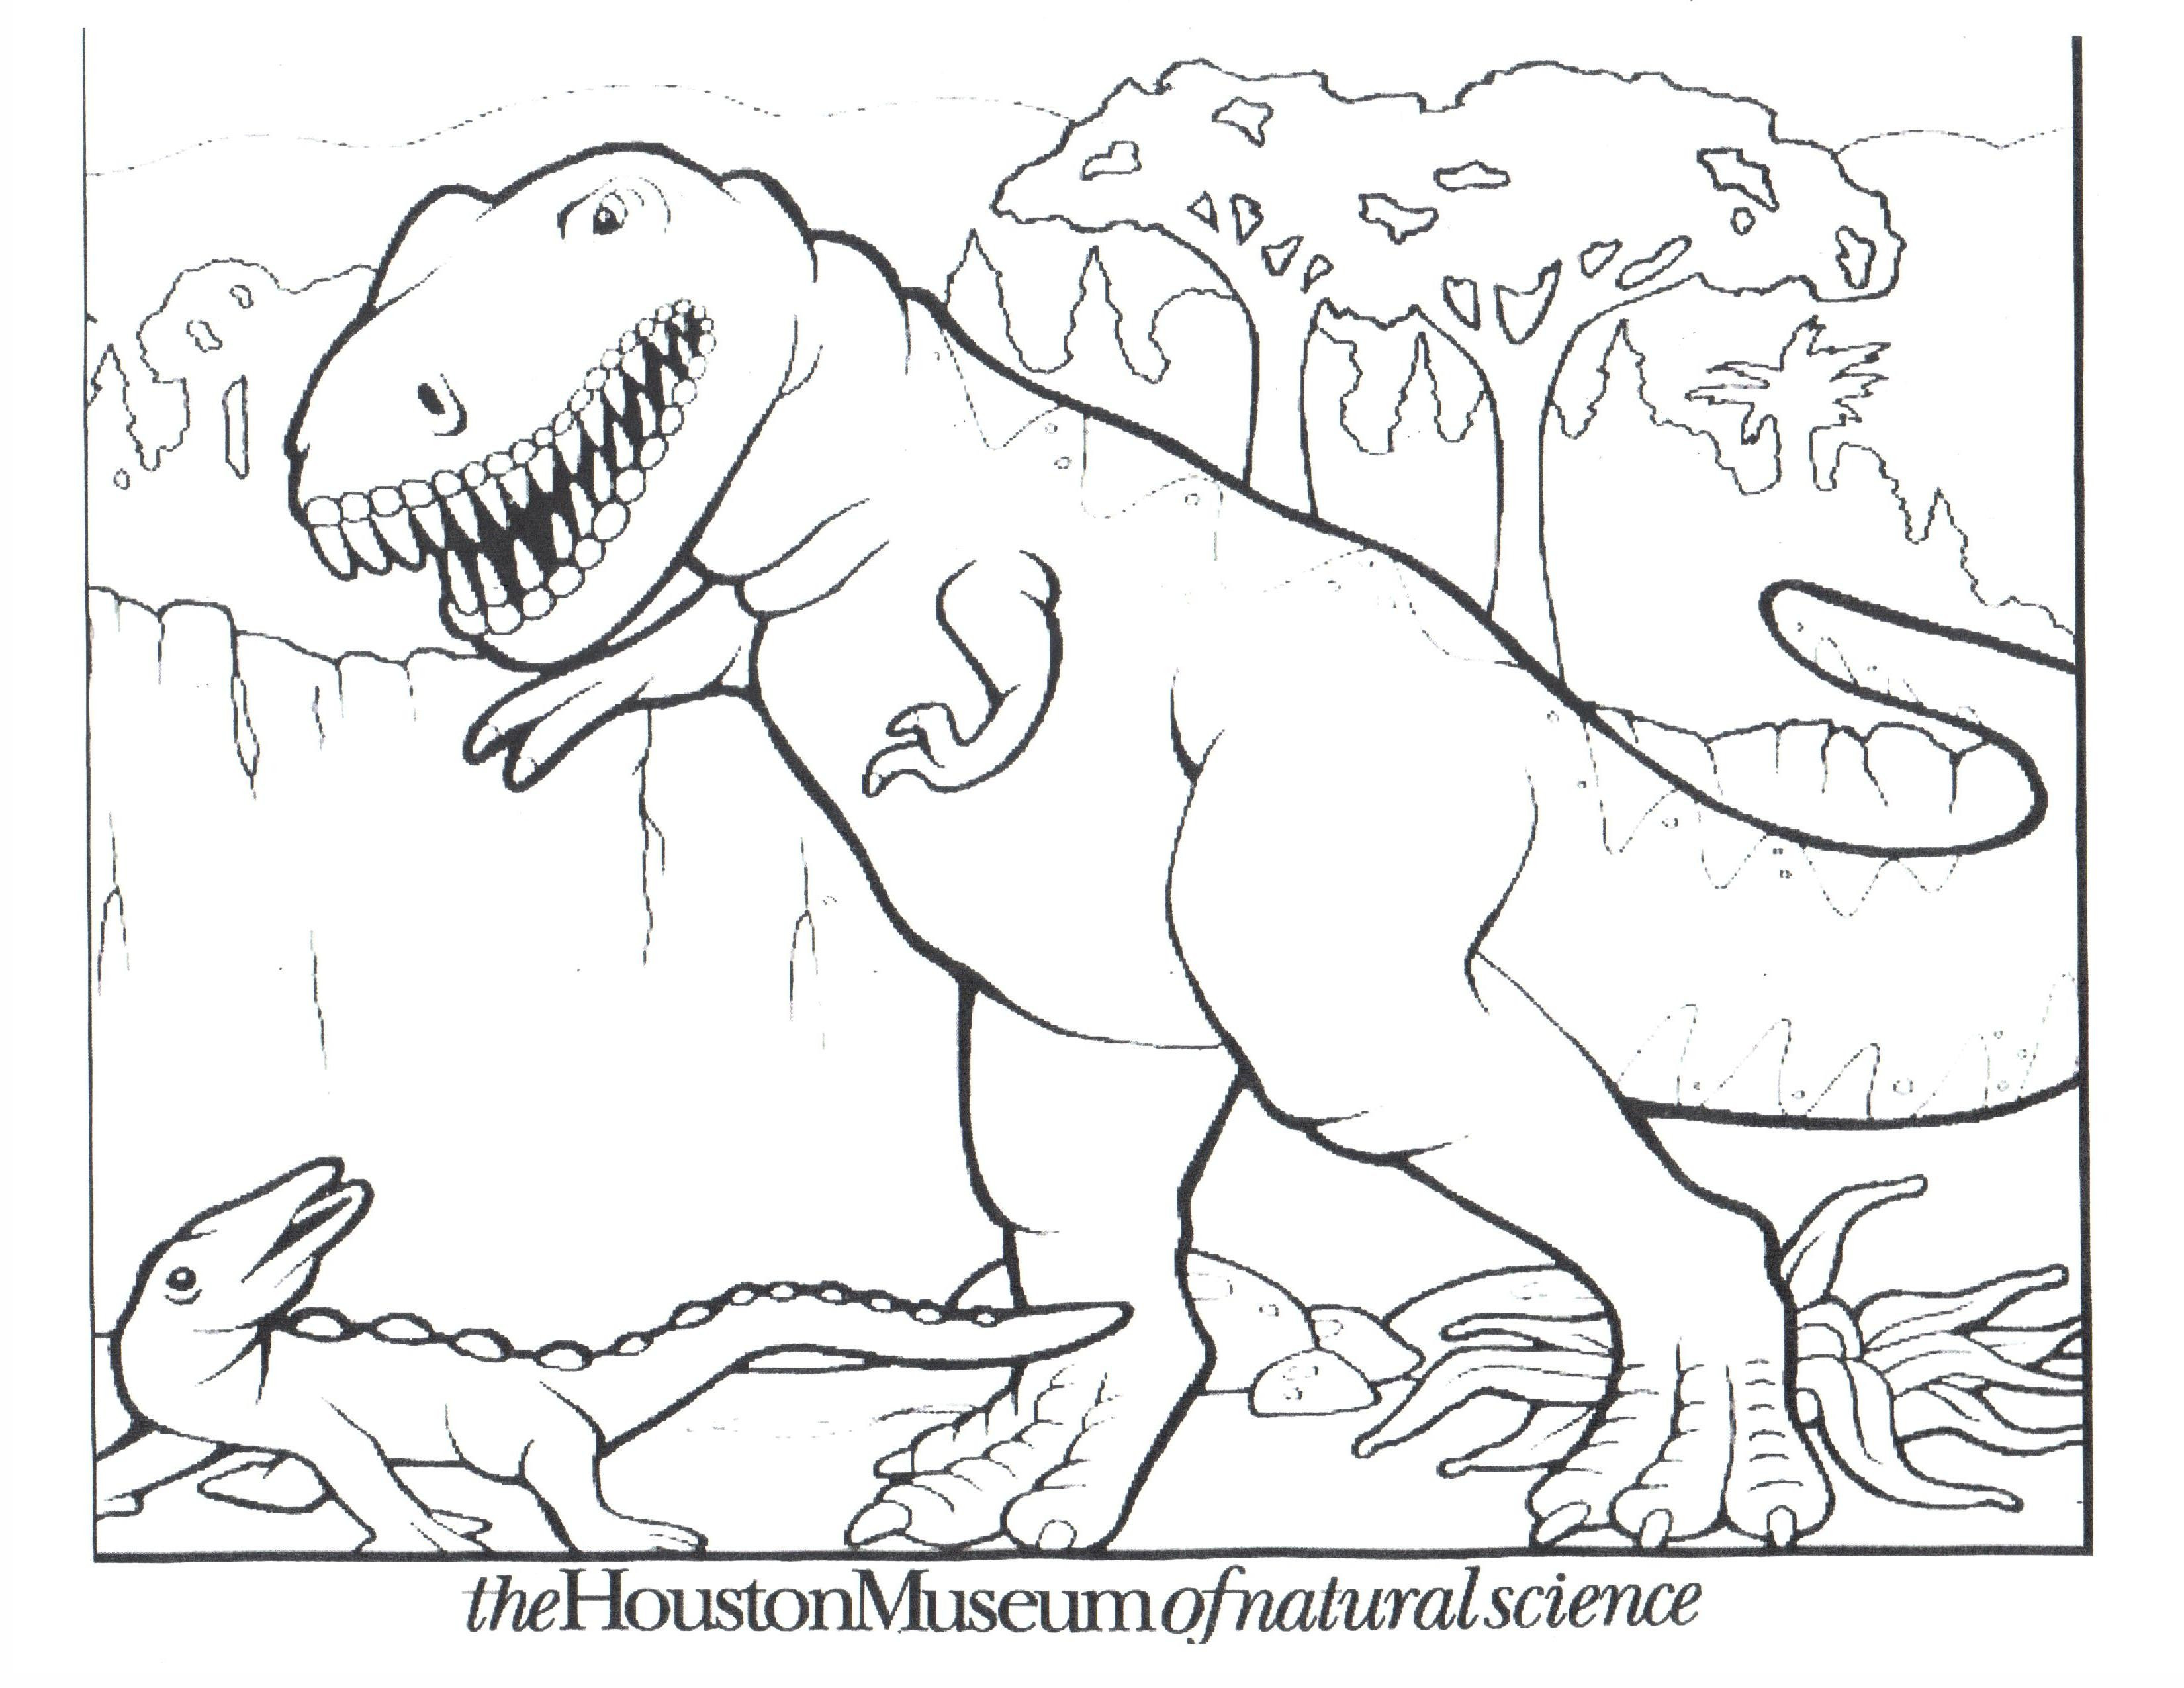 3300x2550 T Rex Dinosaur Coloring Pages For Kids Unique And Acpra